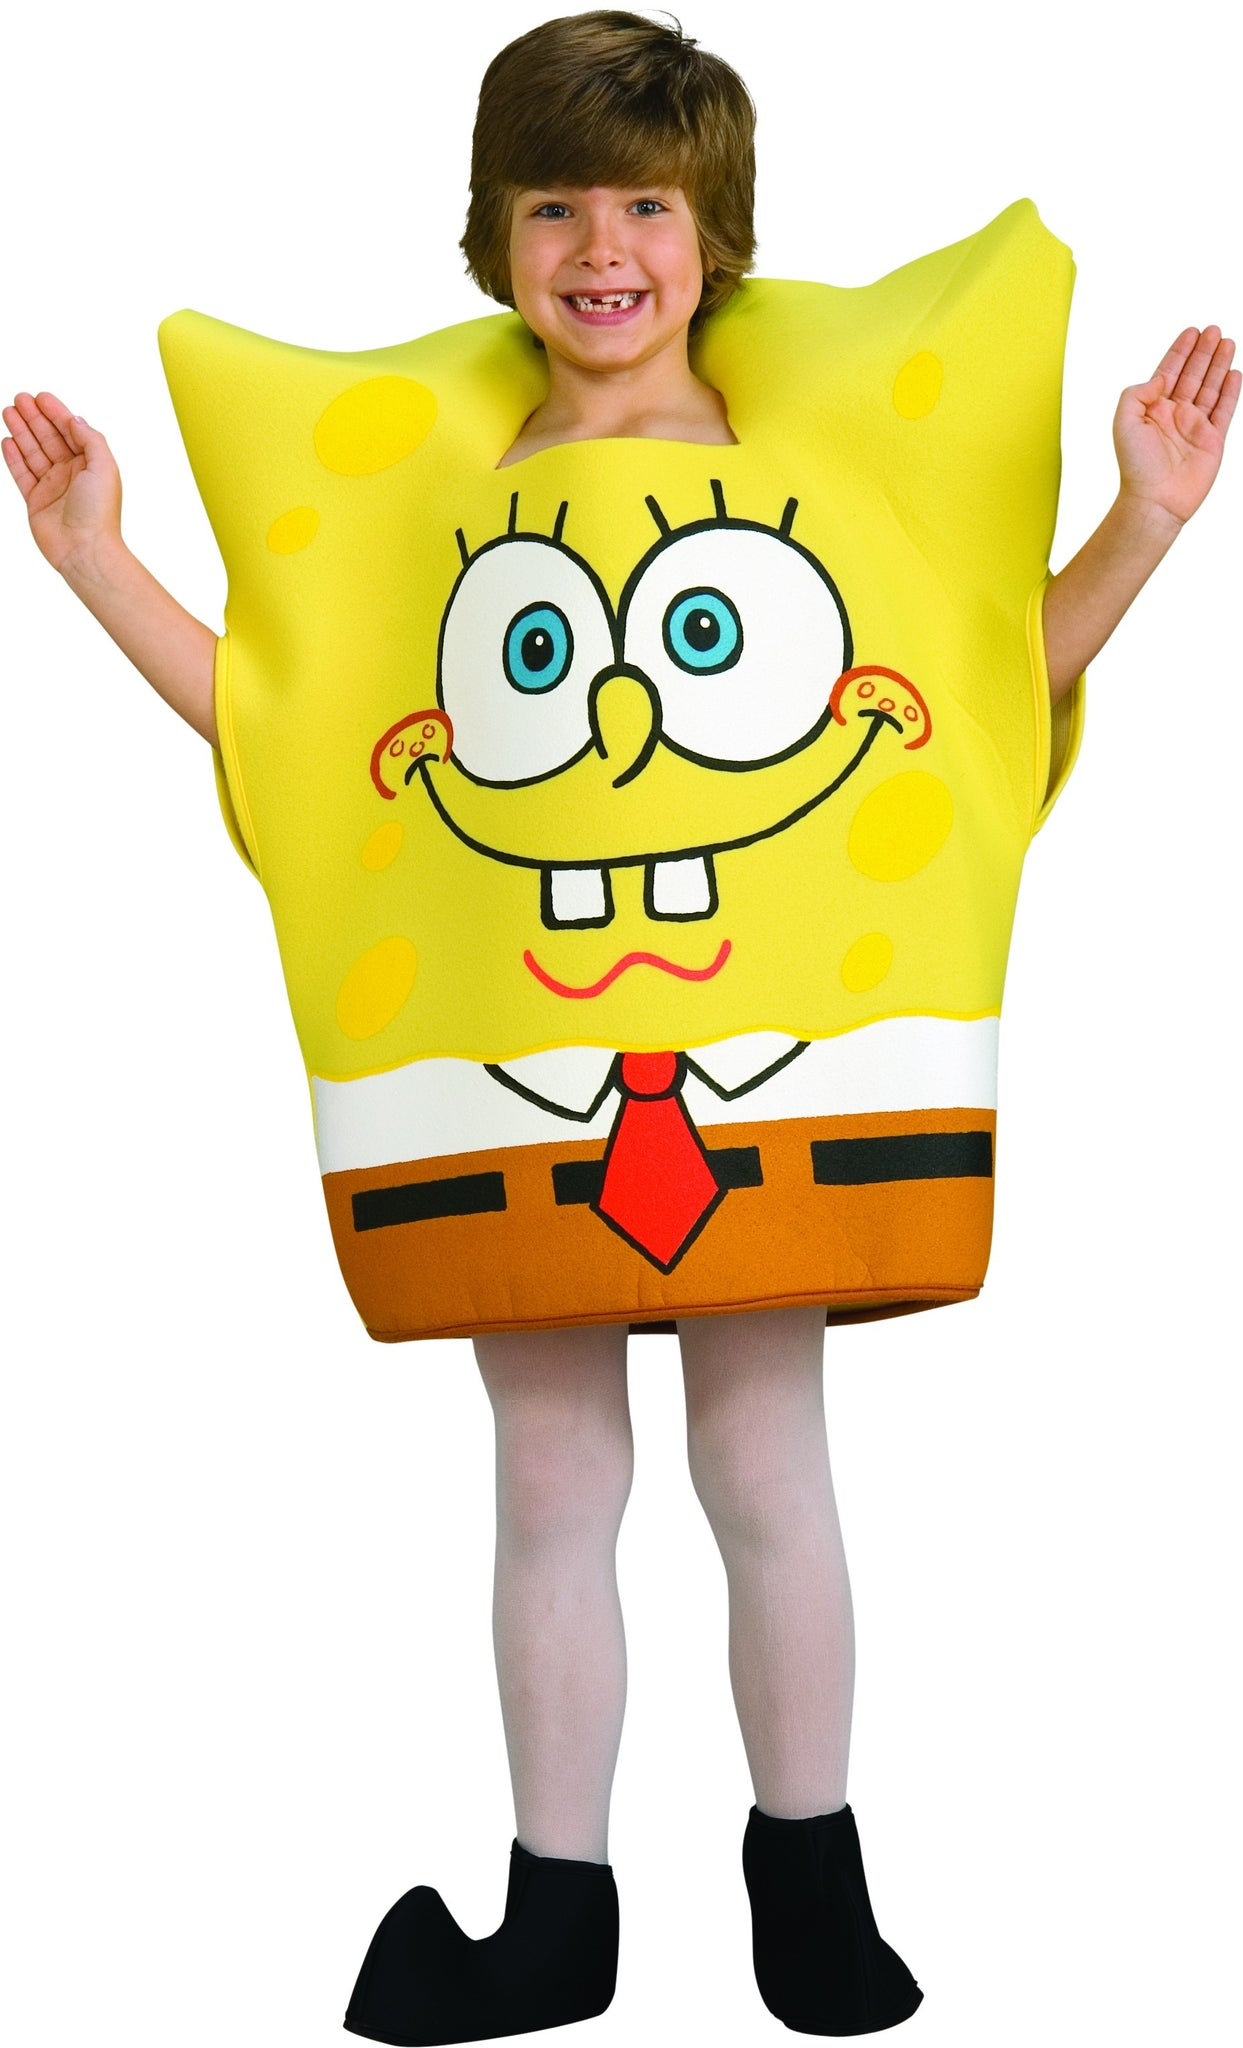 SPONGEBOB SQUAREPANTS FOAM COSTUME, CHILD - SIZE M